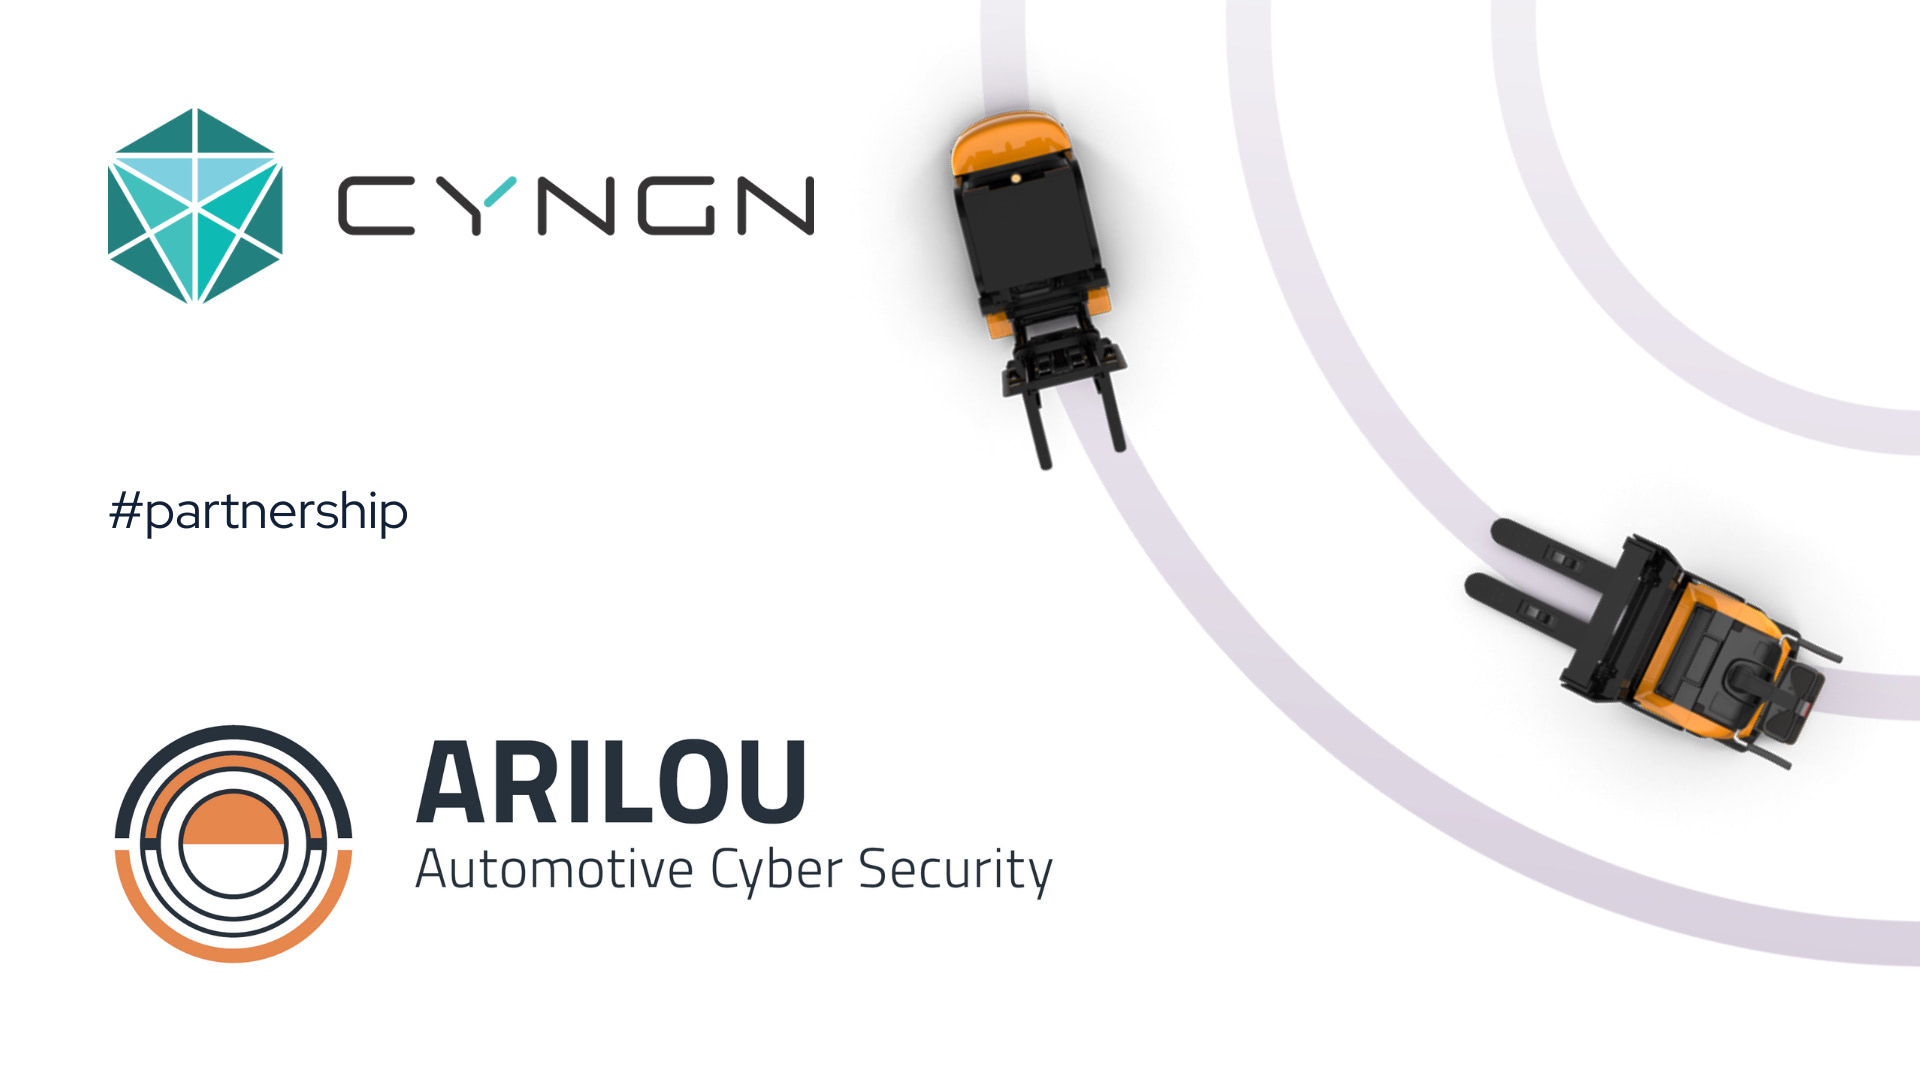 Arilou Automotive Cybersecurity and Cyngn Announce Partnership